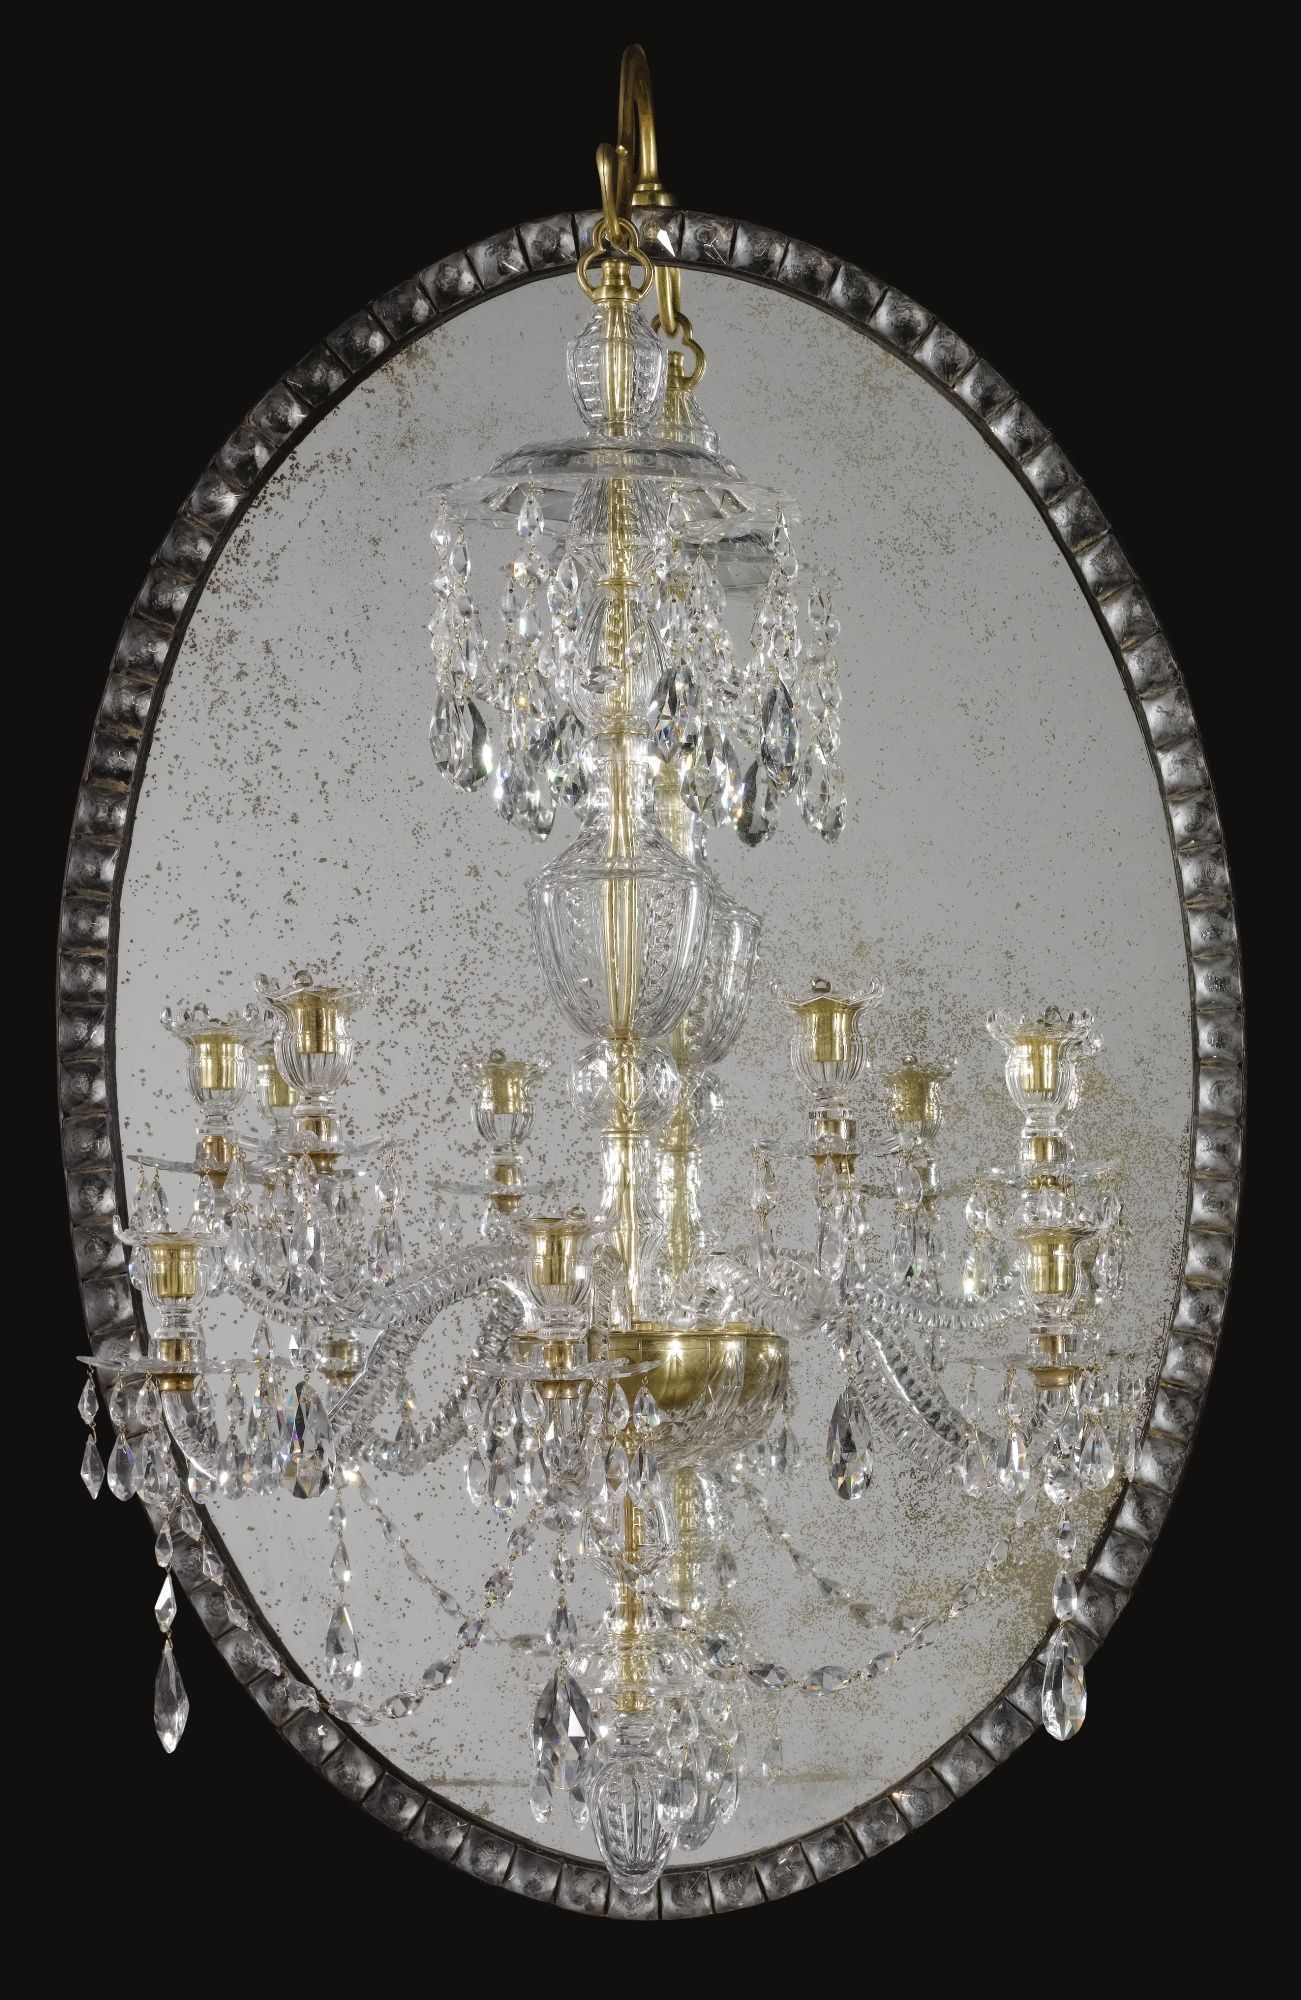 A George III cut-glass mirror chandelier Irish circa 1790 the oval mirror with a border of faceted drops, the chandelier with seven lights with a slender baluster stem surmounted by a canopy hung with drops above the candle arms, similarly hung, with a pendant finial below.